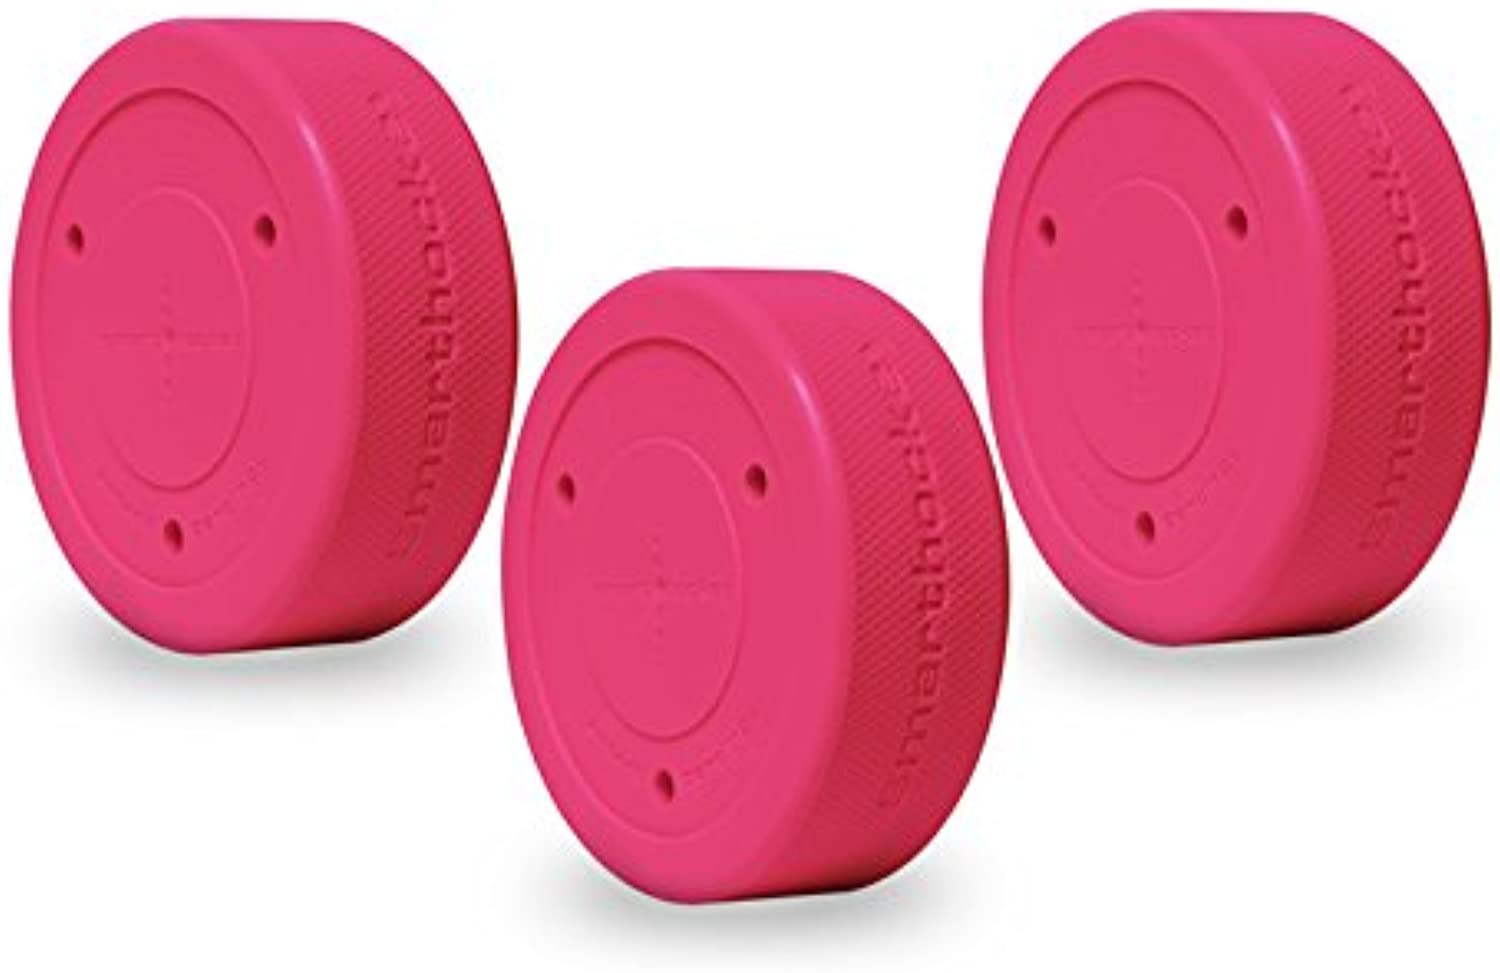 Smarthockey 6oz Original Stickhandling & Shooting Hockey Training Puck 3PACK PINK